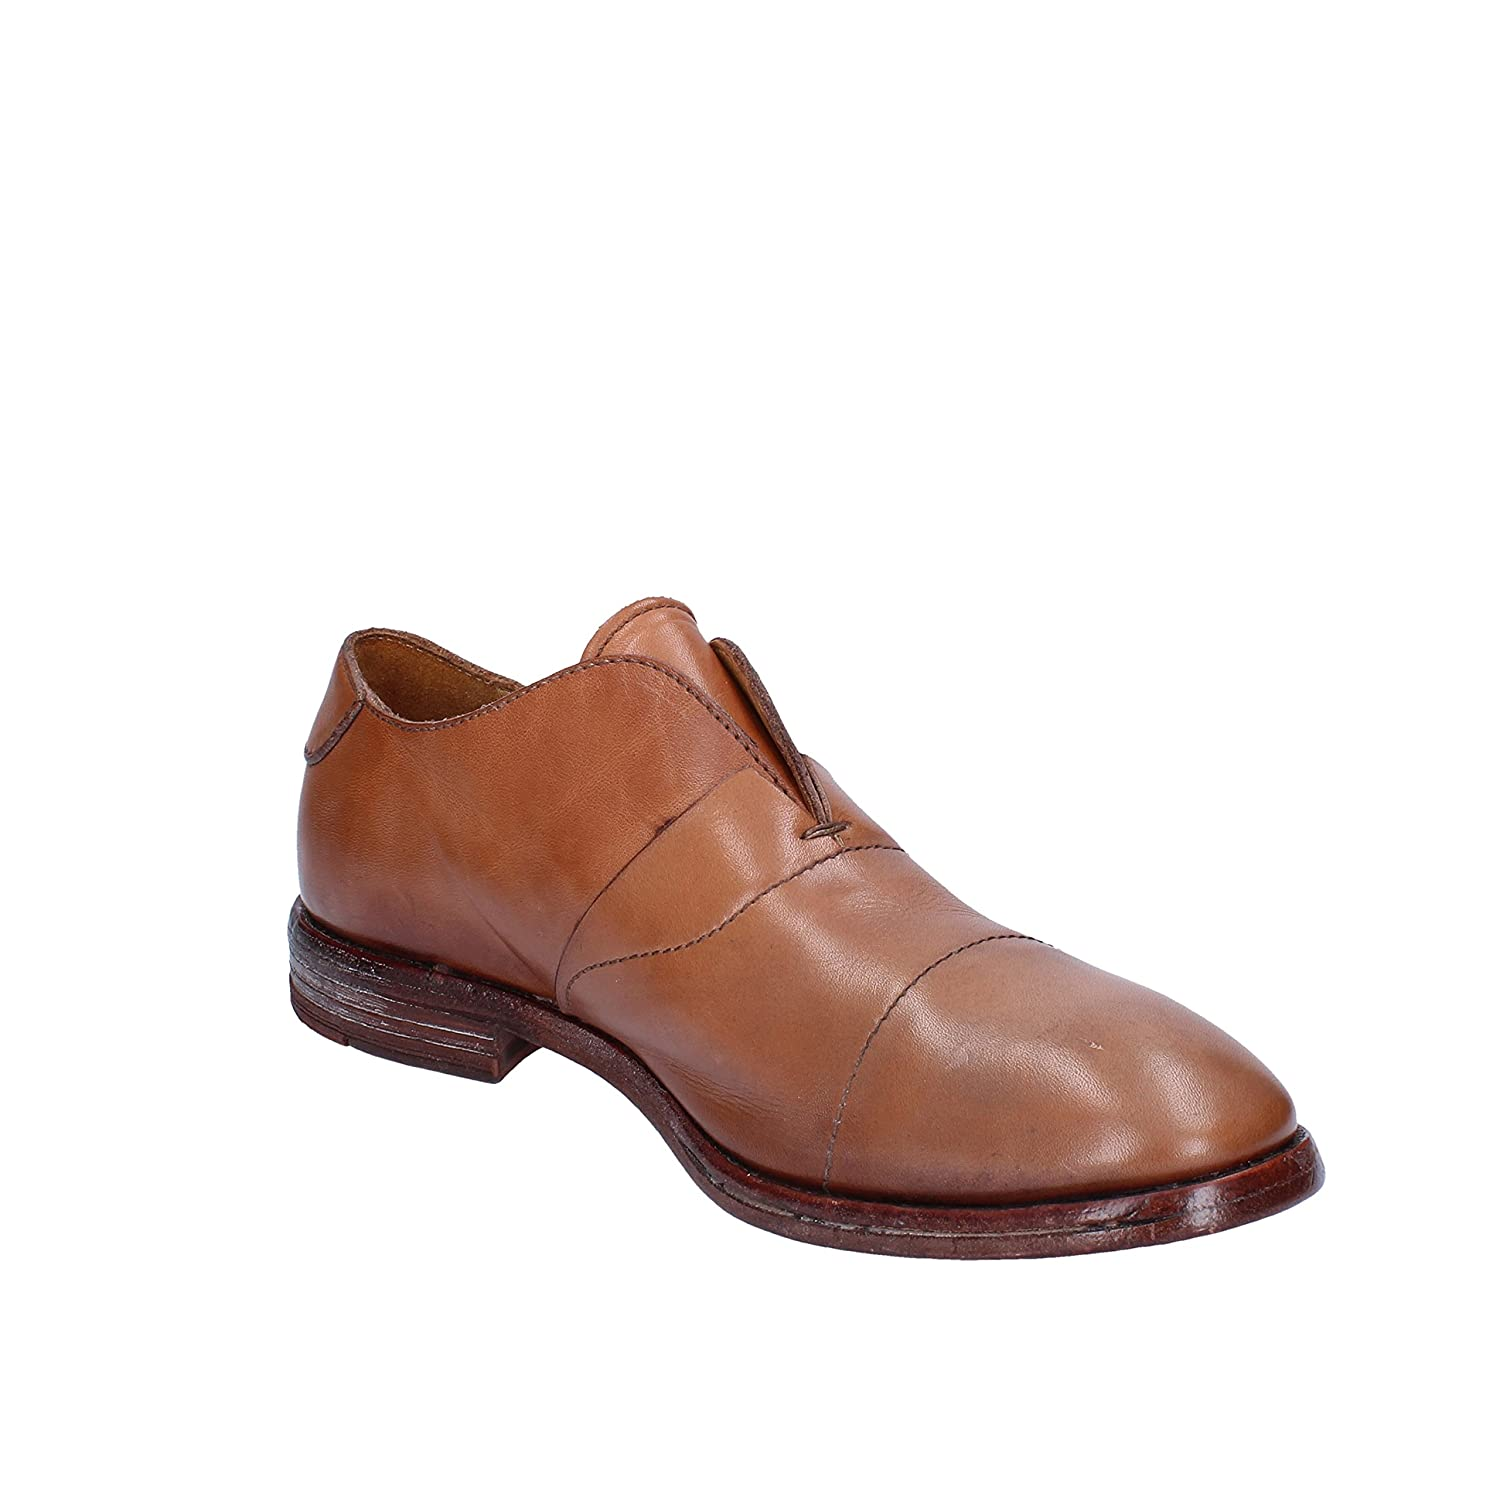 MOMA Oxfords-Shoes Mens Leather Brown